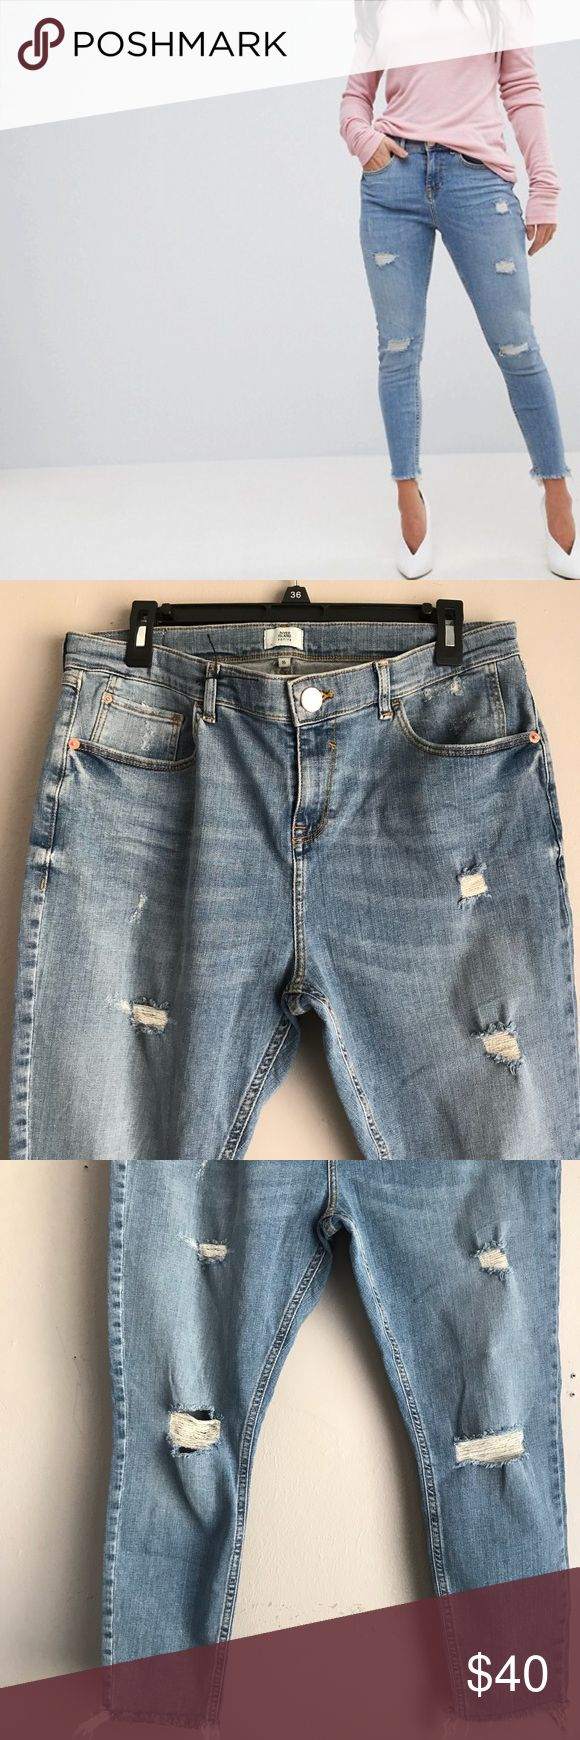 """River island petite distressed skinny jeans These say size 16 in UK size. These are US size 12.  Only worn once. Like new condition.  24"""" inseam and 16"""" across.  PRICE FIRM River Island Jeans Ankle & Cropped"""